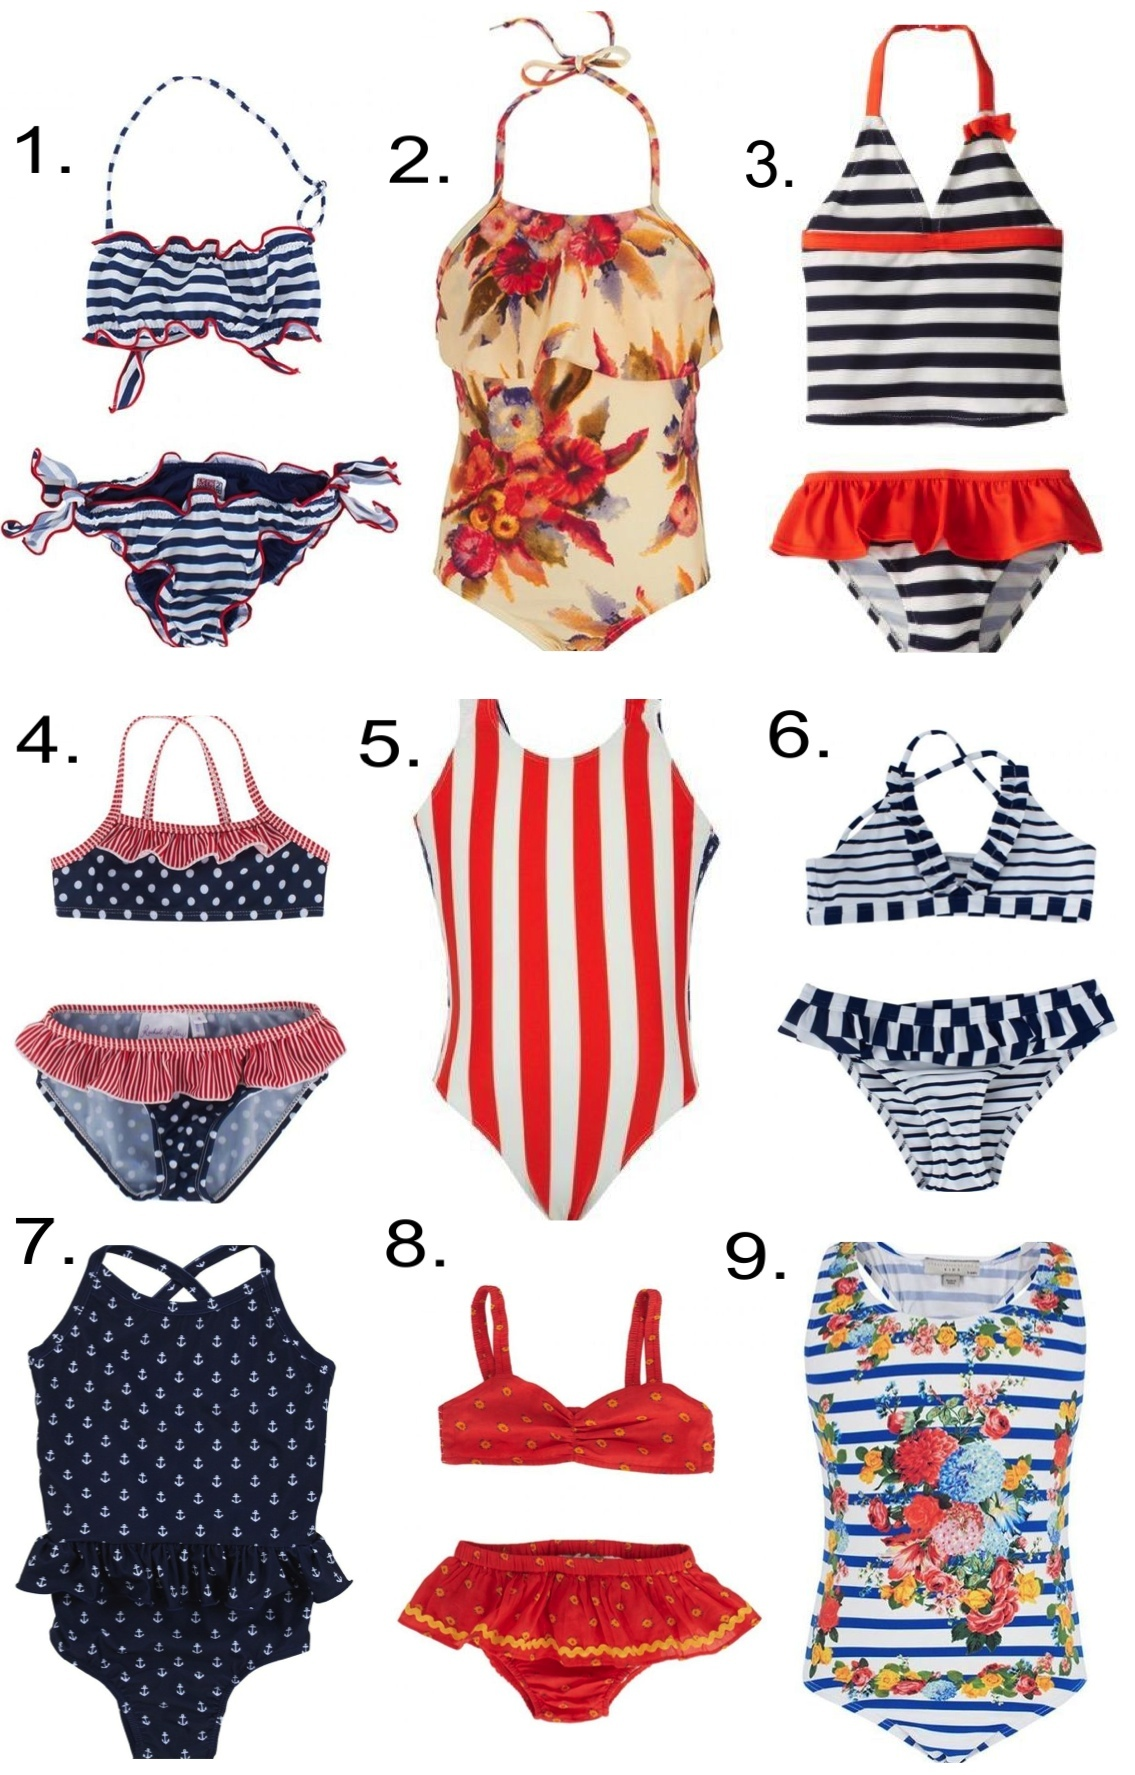 Girls Labor Day Swimsuits... 1.  MC2 St Barth Nautical Bandeau Frill Two-Piece  2.  Zimmermann Flare Halterneck Swimsuit  3.  Osh Kosh 2 Piece Striped Tankini   4.  Rachel Riley Polka Dot & Stripe Bikini  5.  Finger In The Nose American Flag Swimsuit  6.  Melissa Odabash Frill Stripe Bikini  7.  Egg by Susan Lazar Swimsuit  8.  Stella McCartney Kids Two-Piece  9.  Stella McCartney Stripe Flower Swimsuit